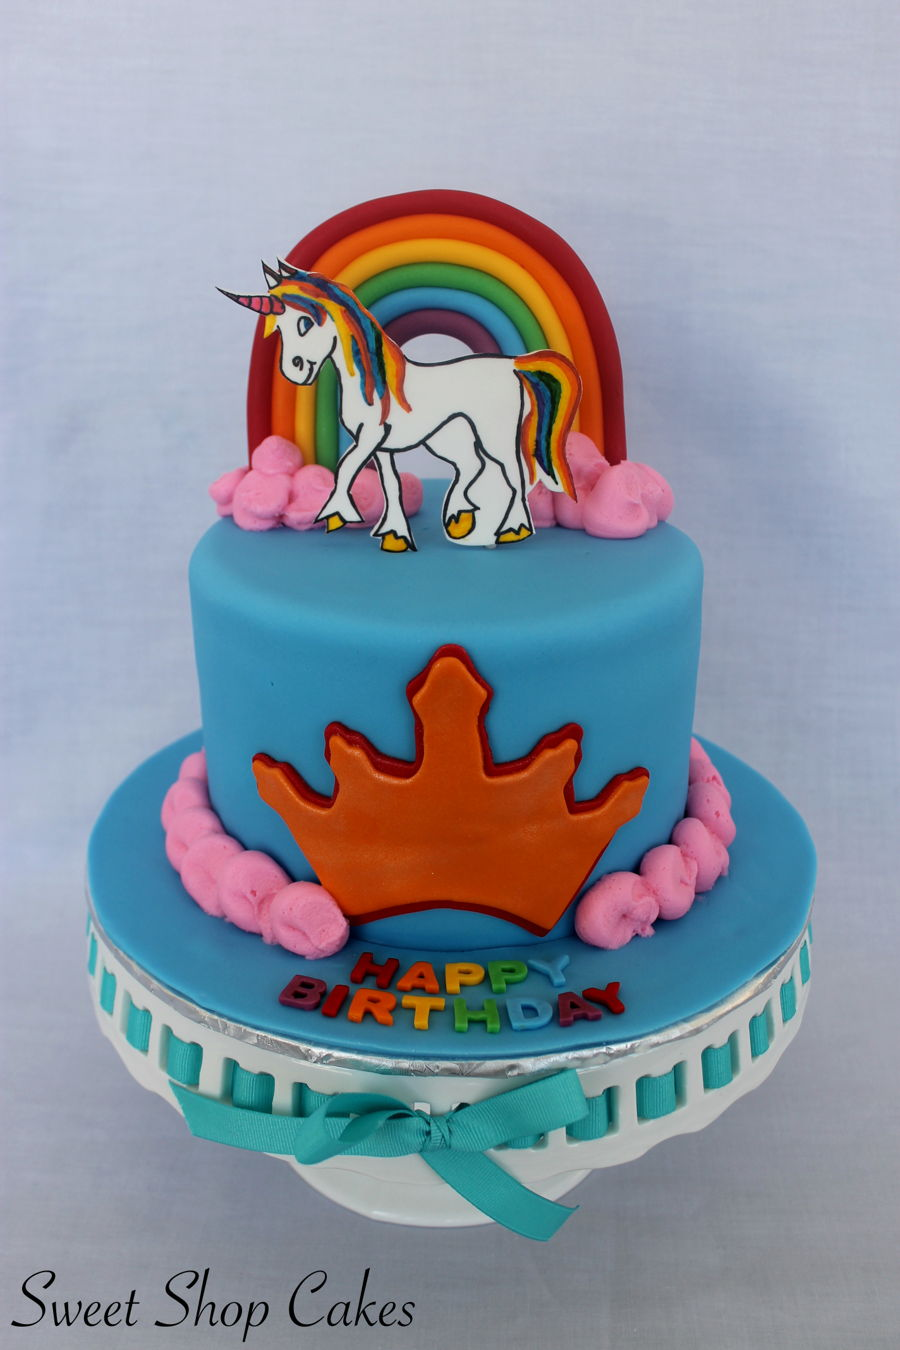 900_rainbow-and-unicorn-birthday-cake-937512rBHmJ.jpg